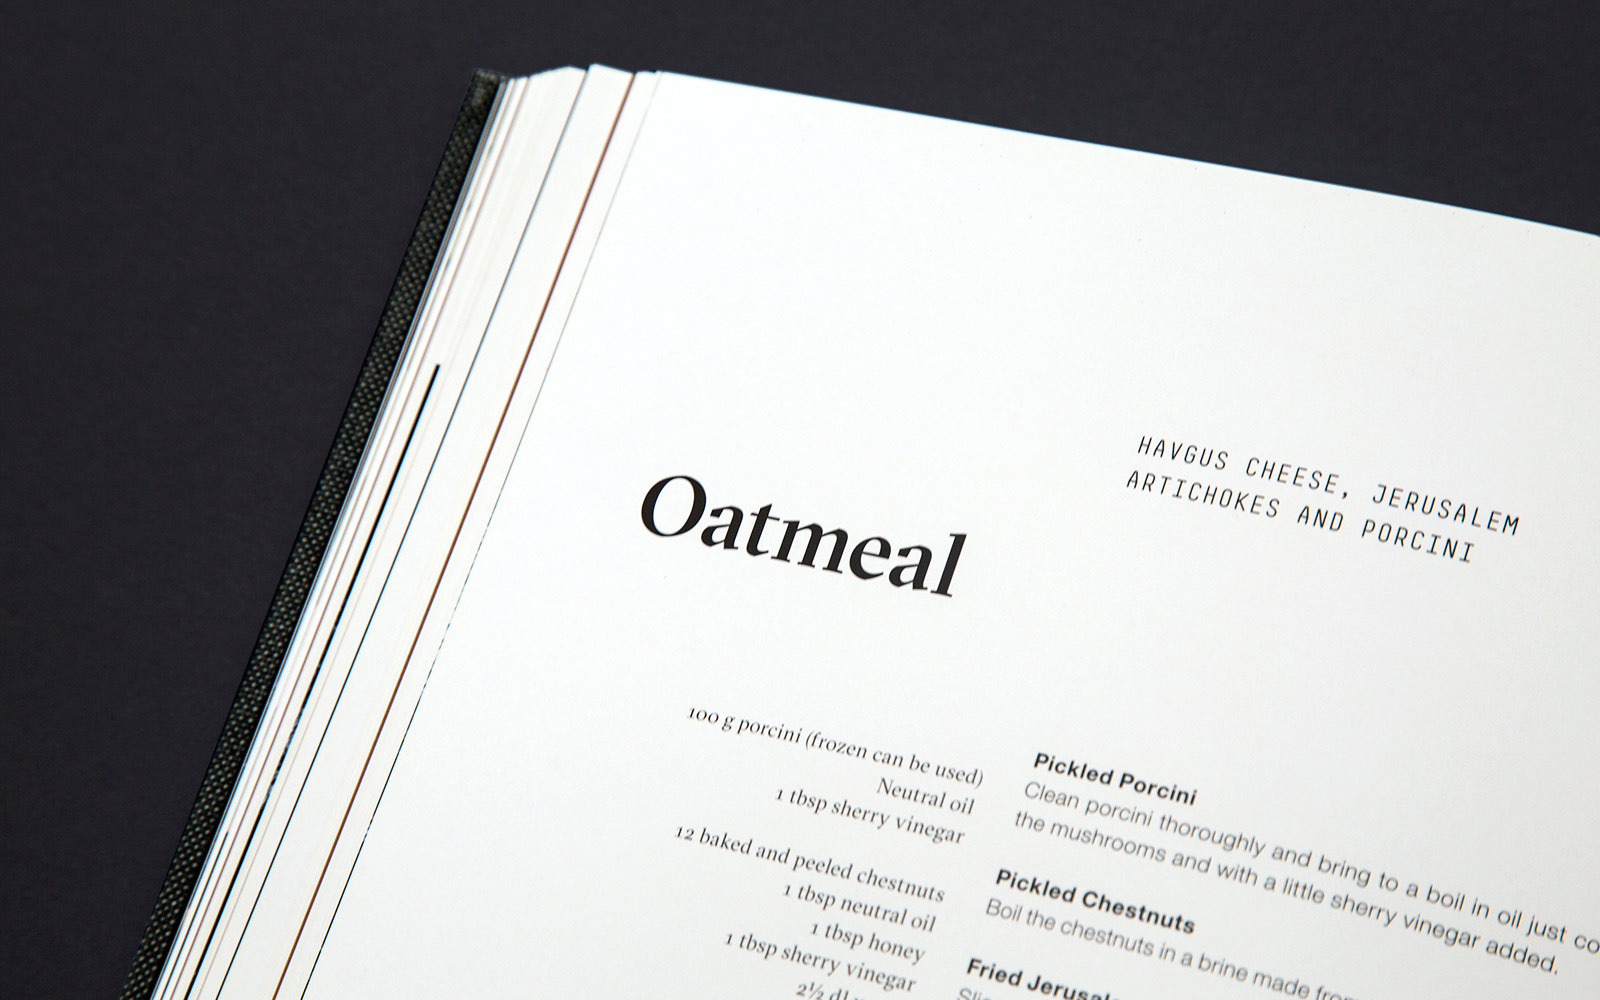 Close-up of the recipe Oatmeal in the Kokkeriet cookbook